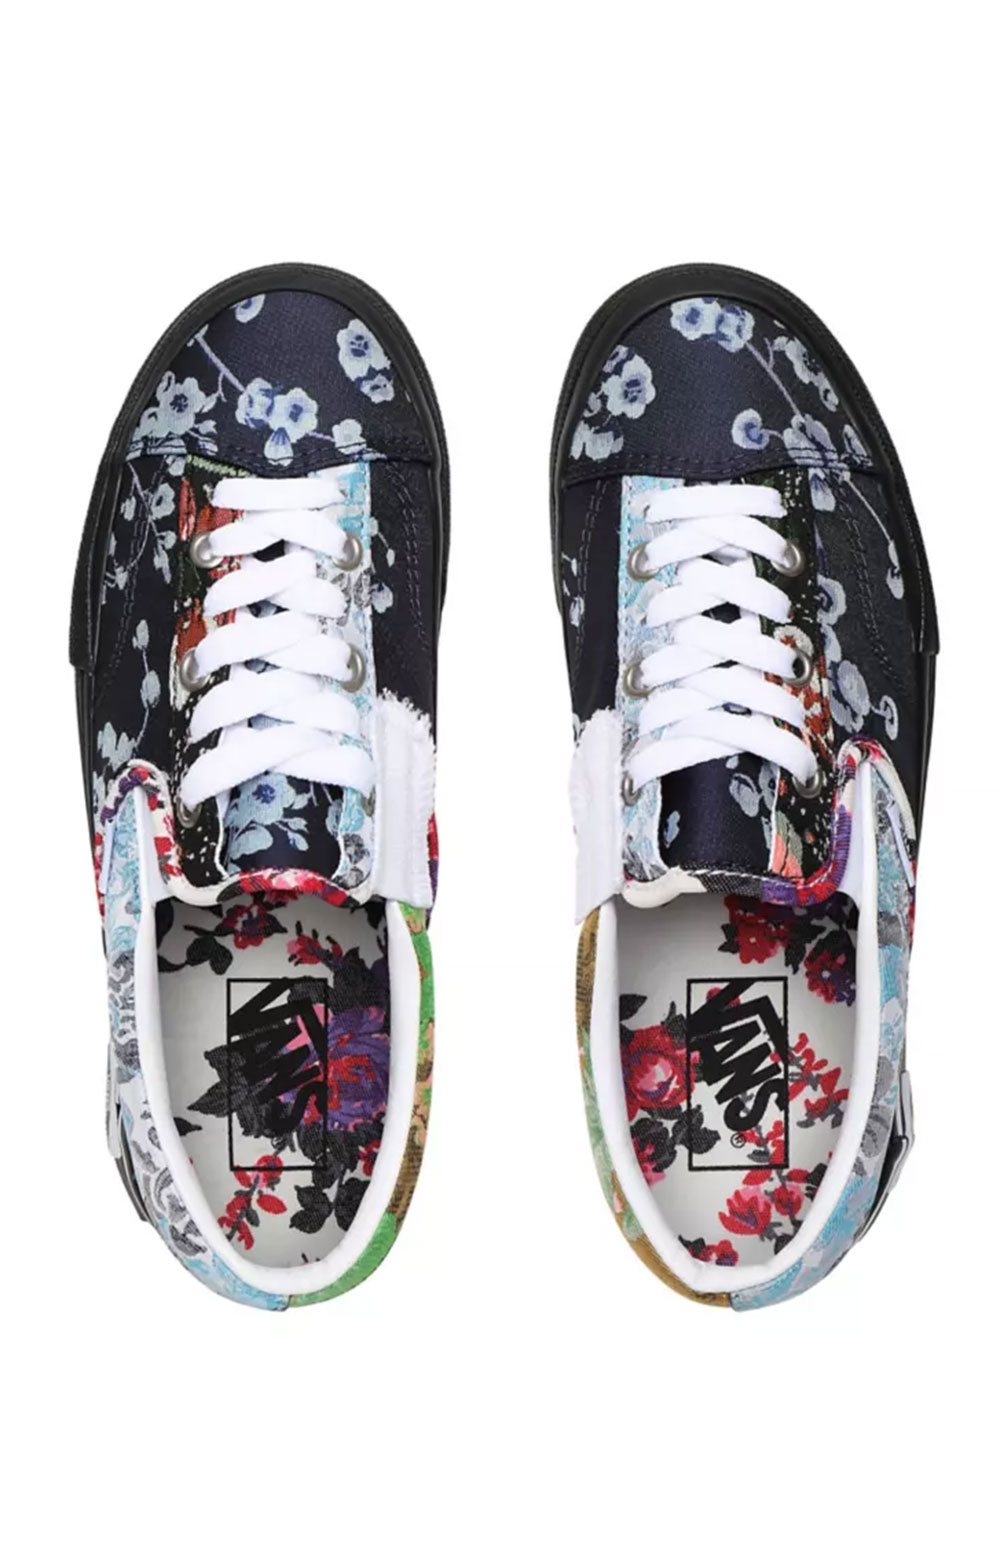 (WM5XHQ) Florals Classic Slip-On Cap Shoe - Brocade  3